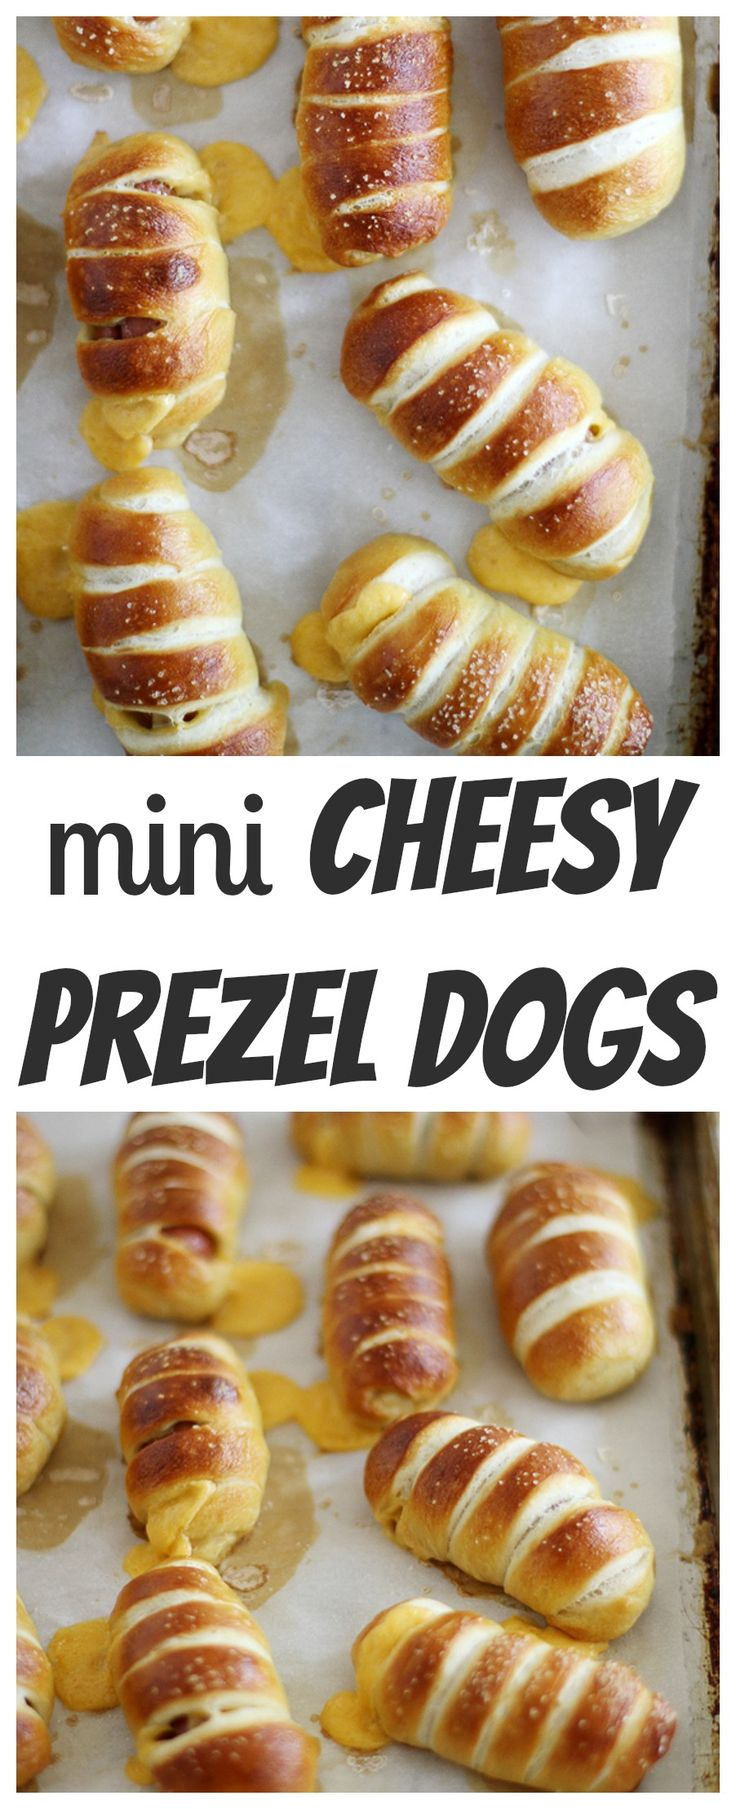 Mini Cheesy Pretzel Dogs. Bite sized hotdogs wrapped in soft pretzels and stuffed with cheese. WOW! A must make for game day and super bowl!